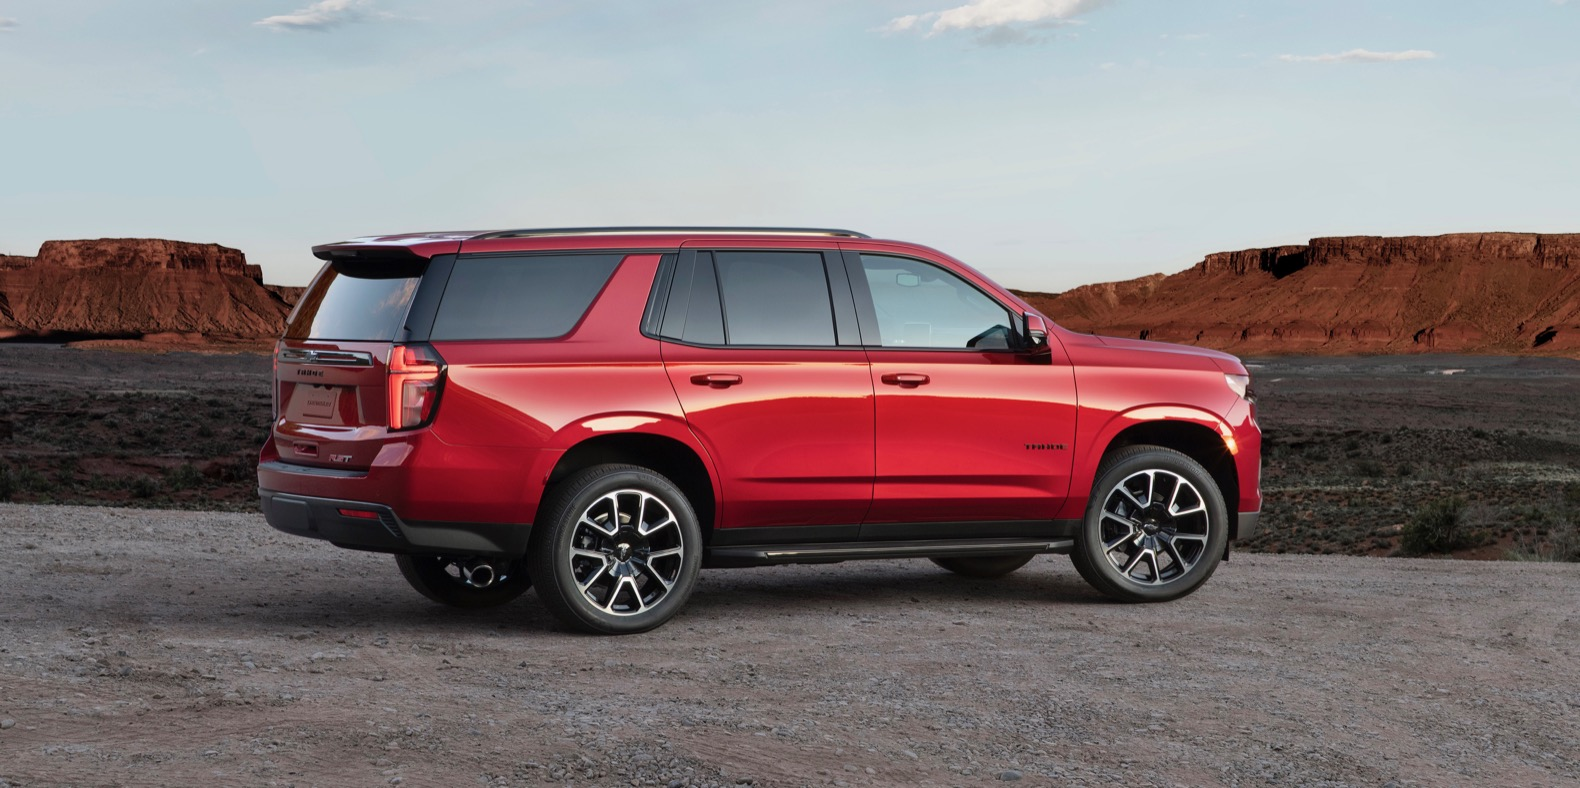 2021 chevy suburban and tahoe debut with more style room